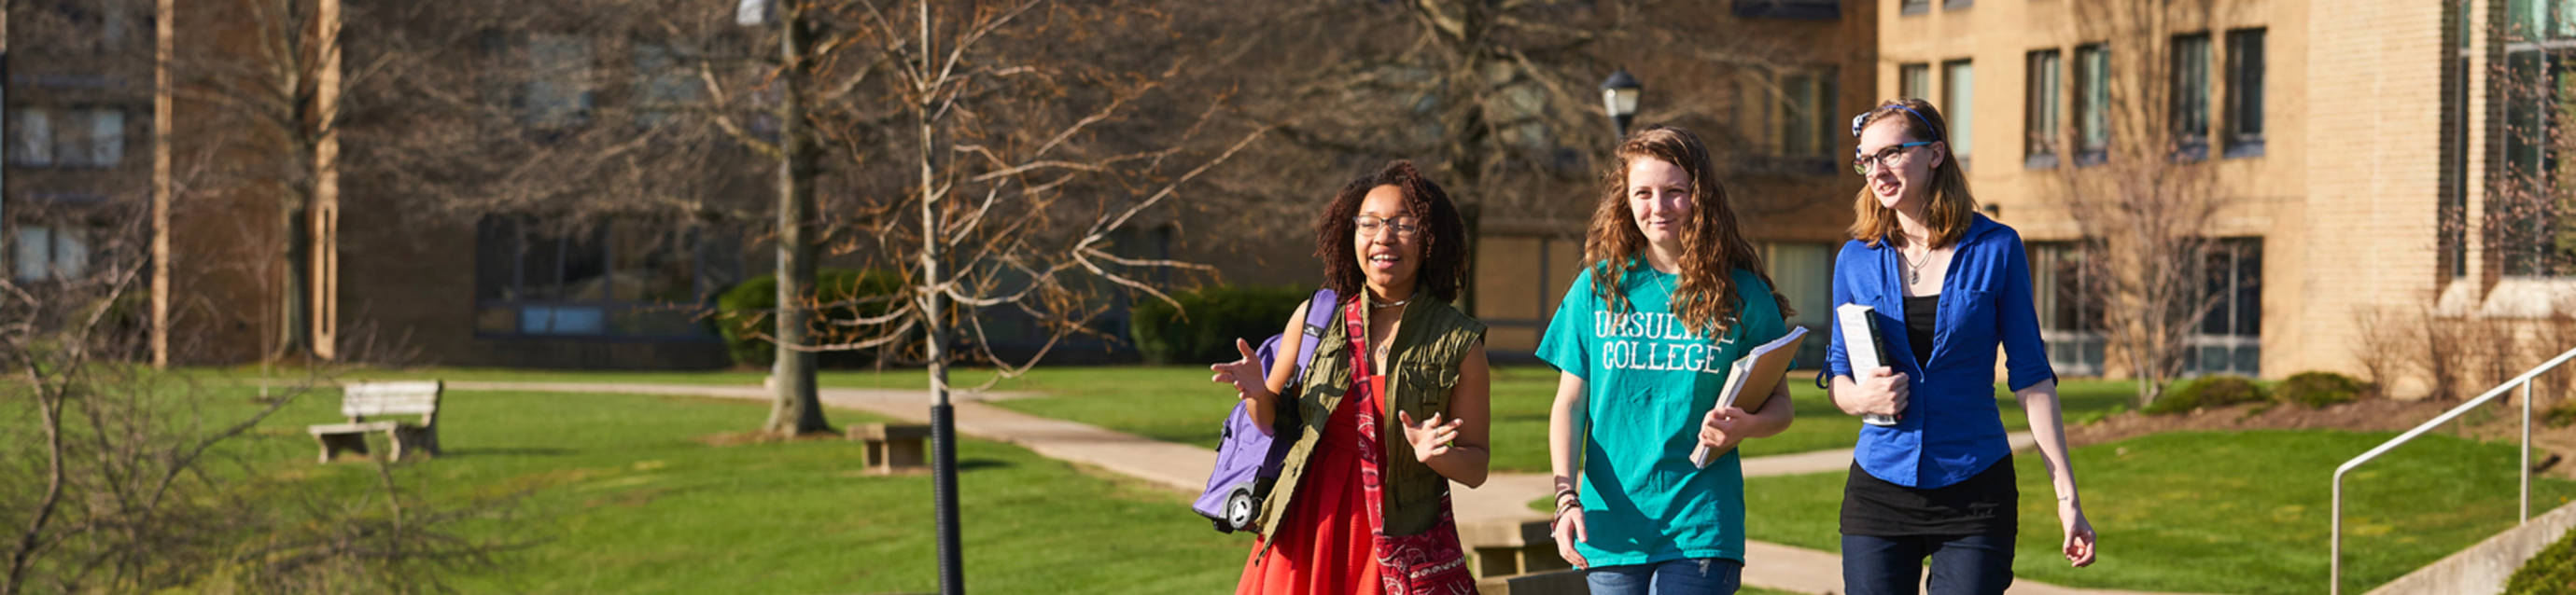 Ursuline college students walking to class